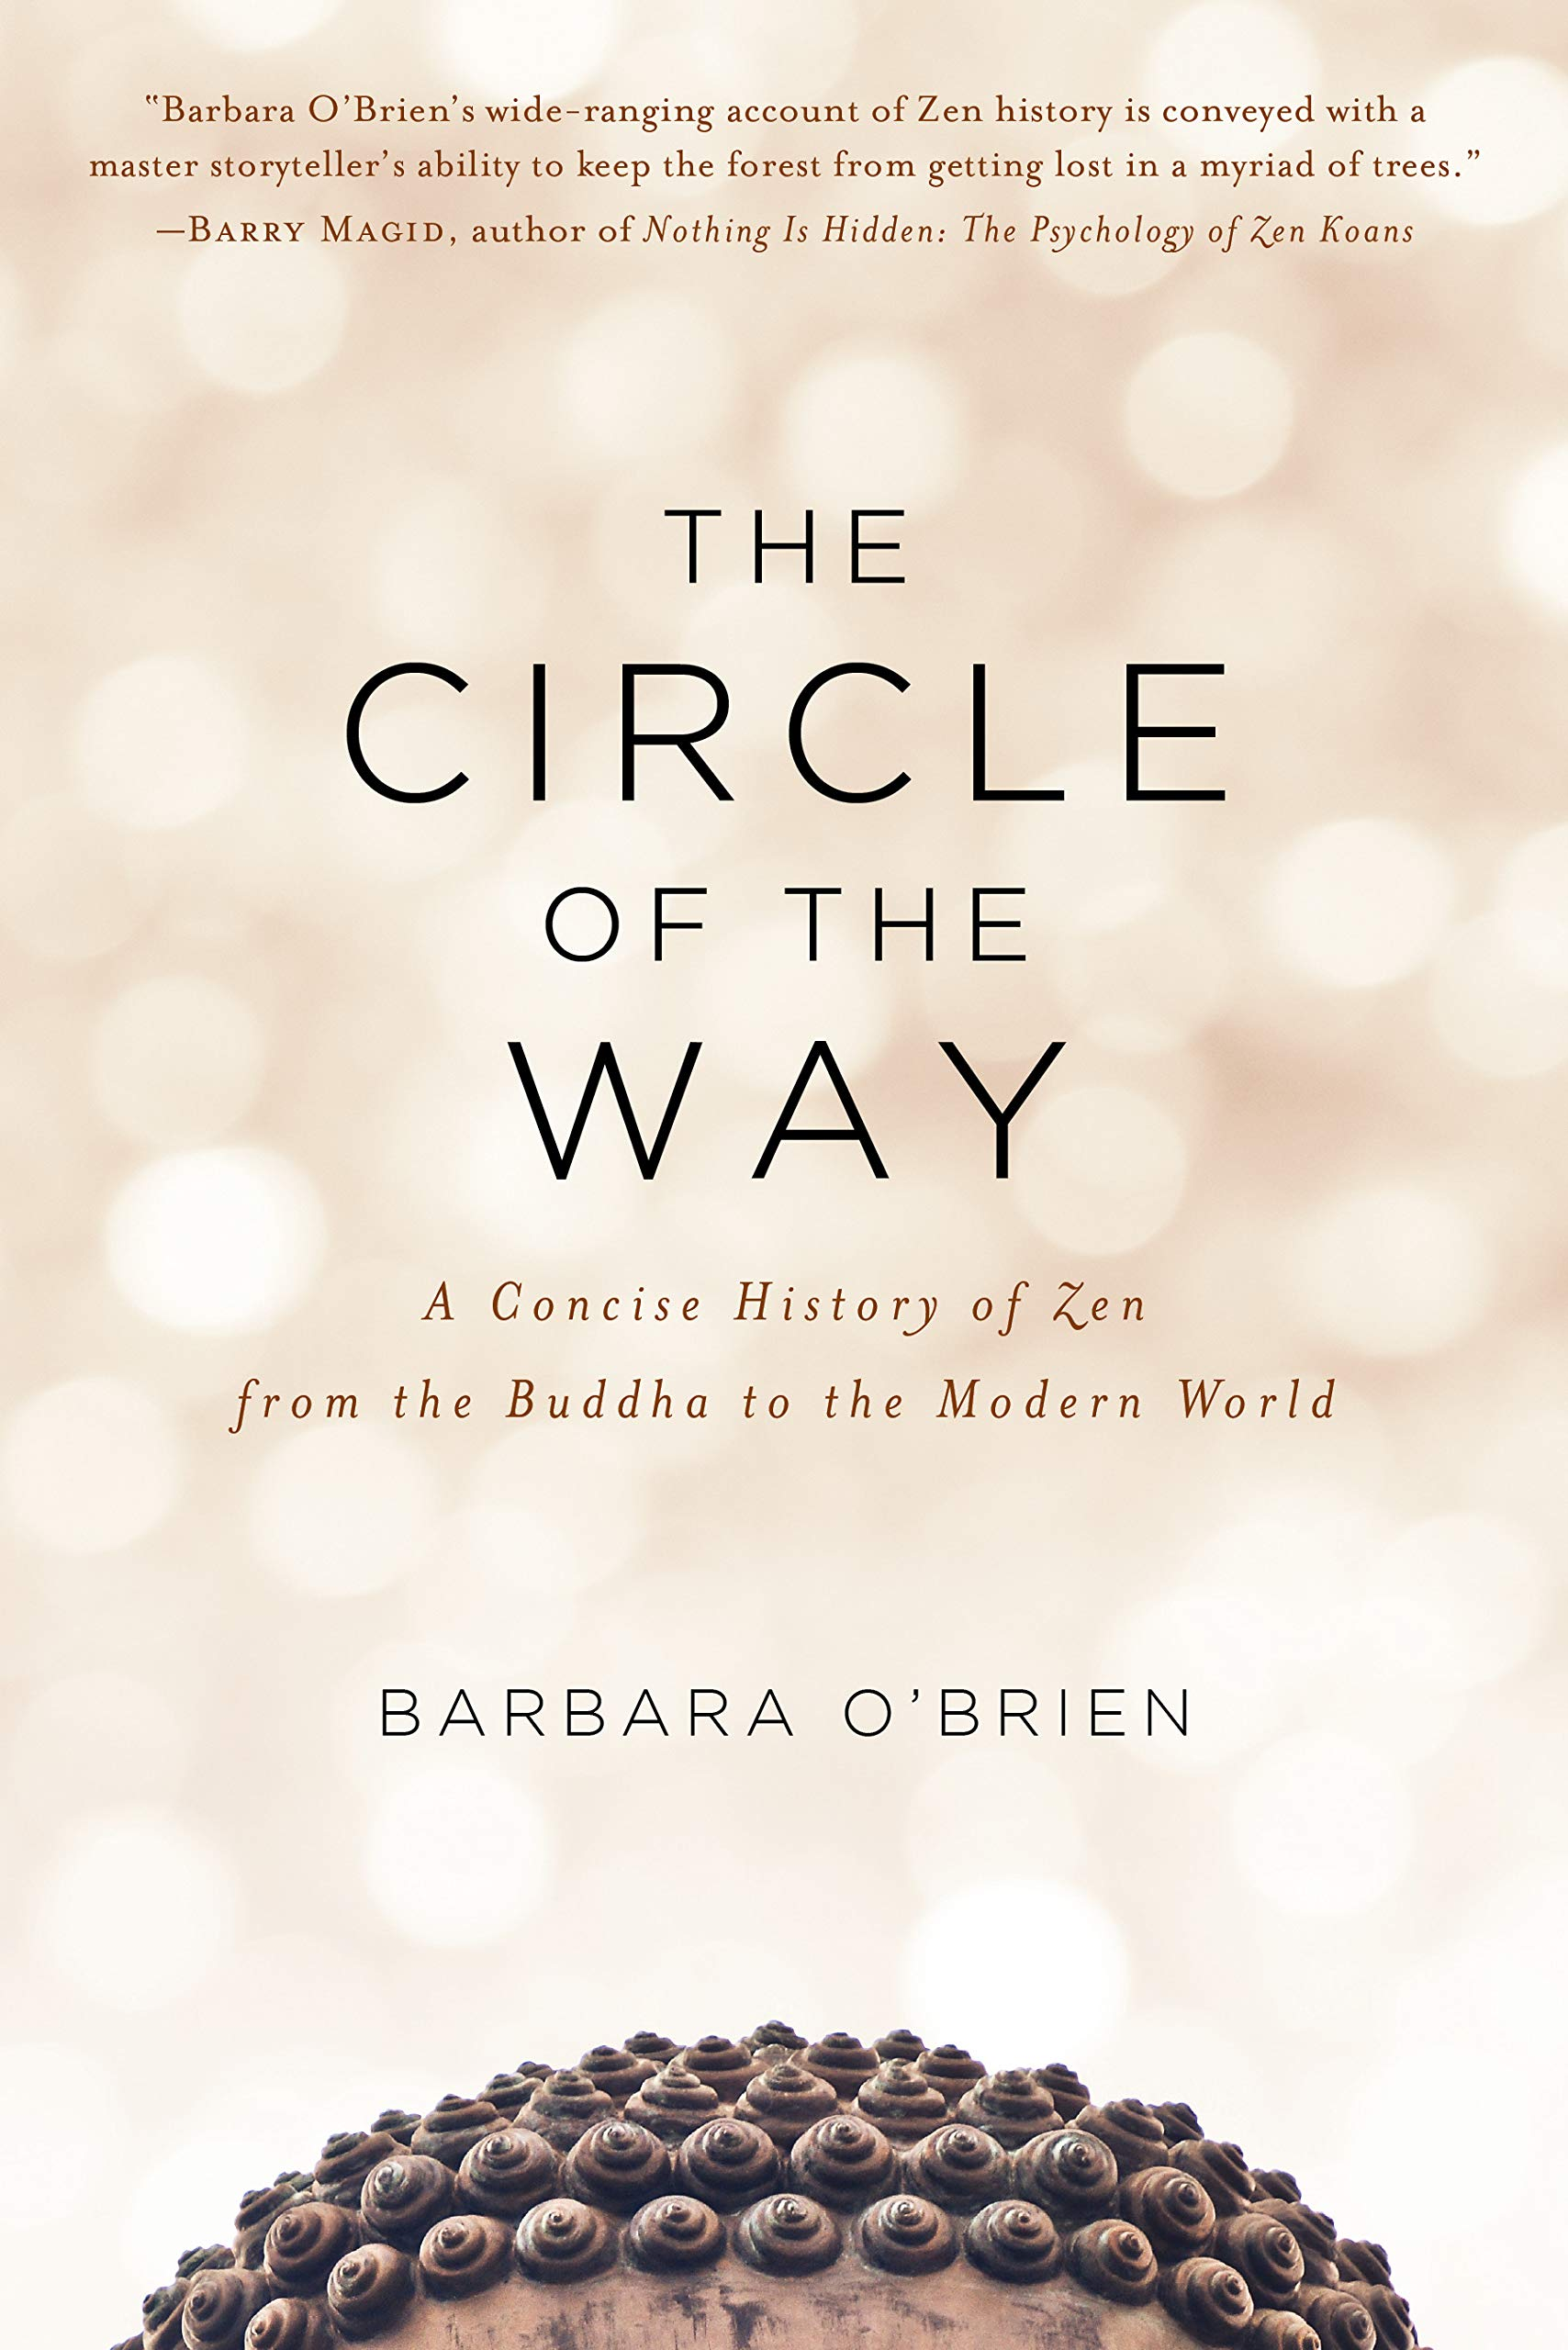 O'Brien Circle Way cover art